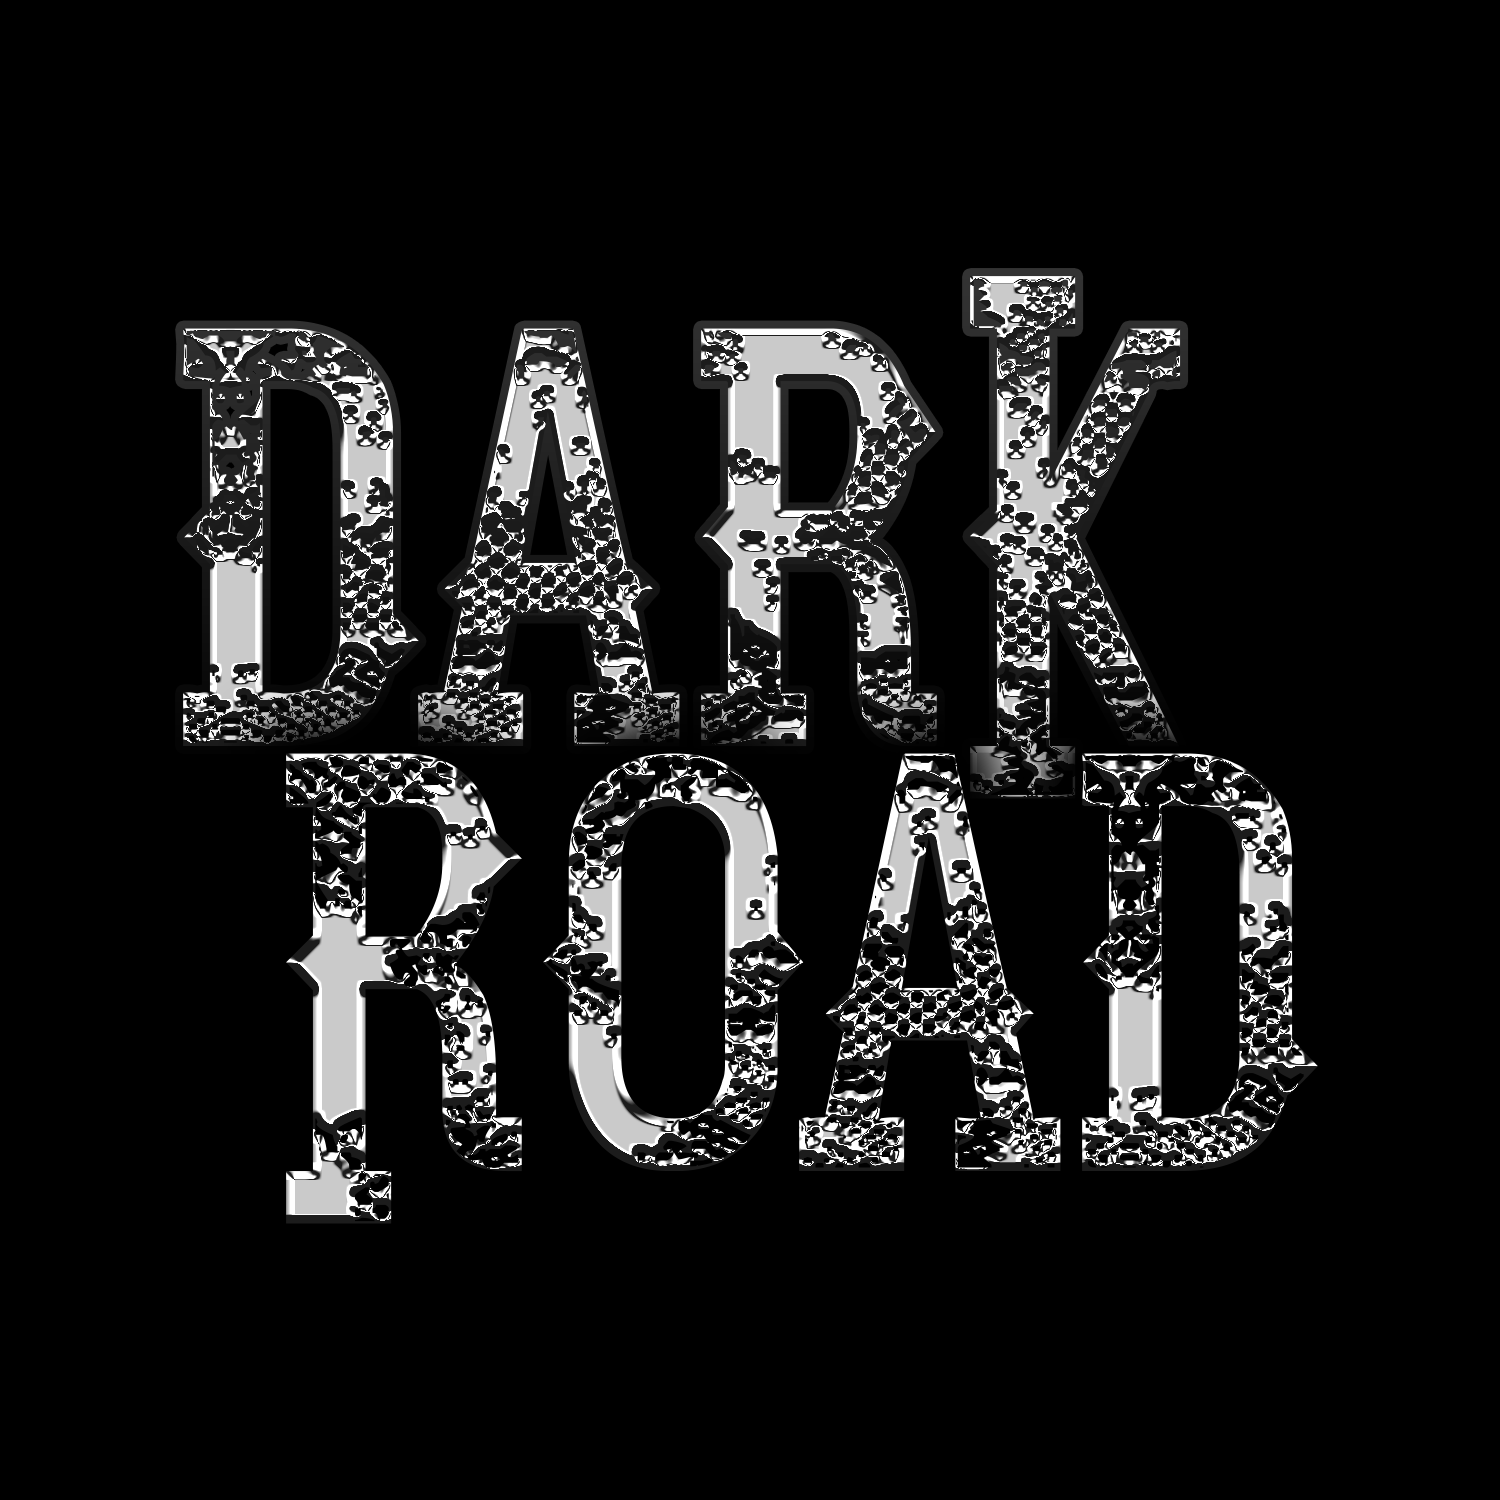 Dark Road example image 3